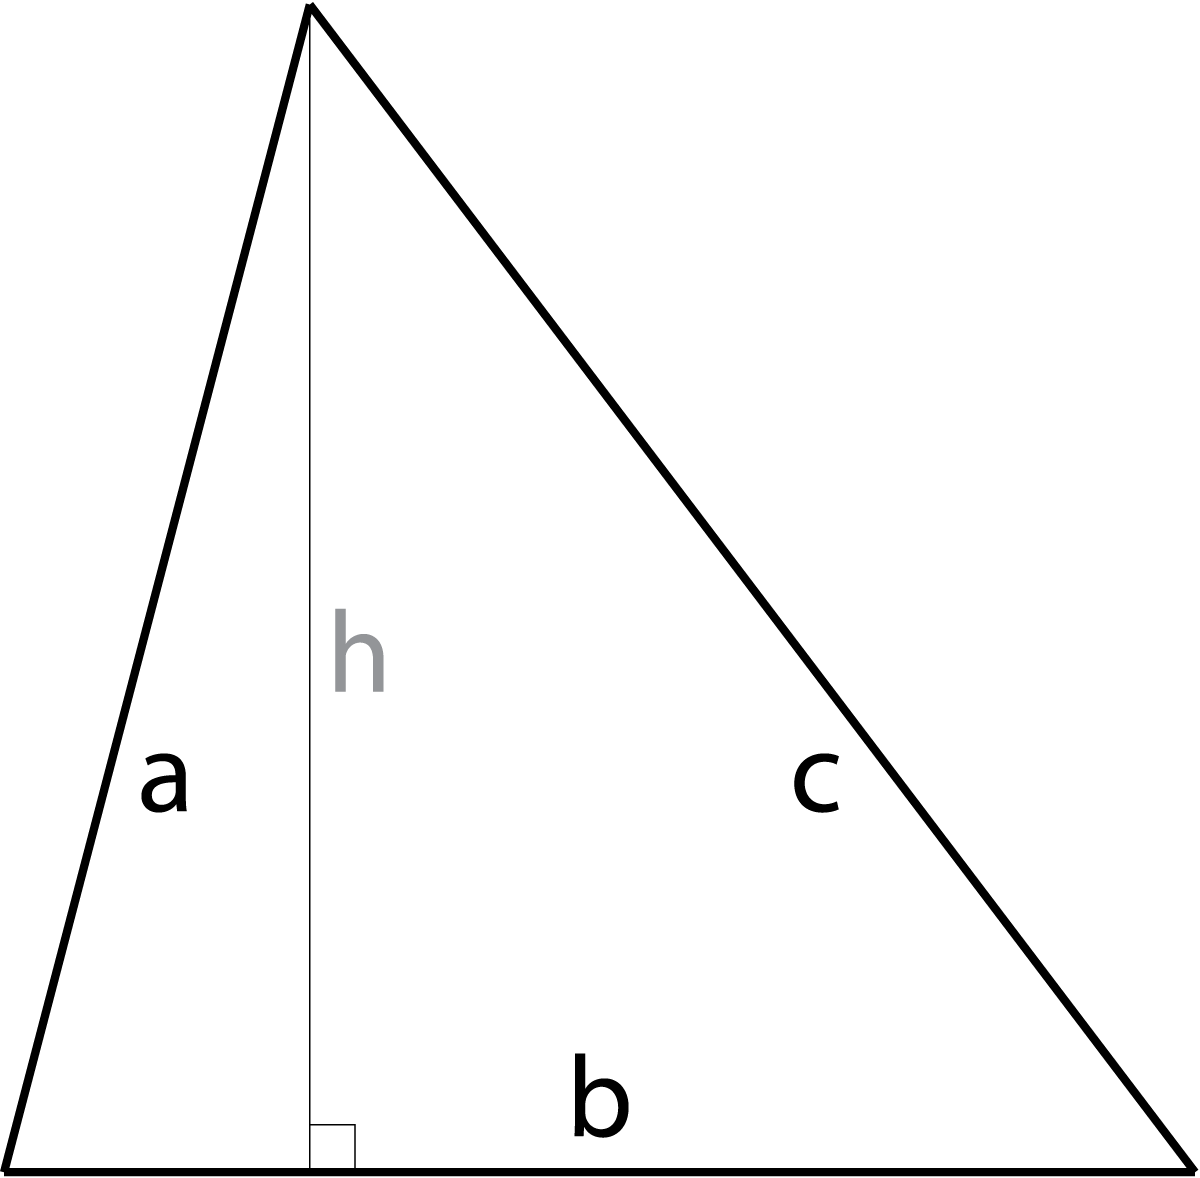 hight resolution of diagram of a triangle showing a edge a b edge b and